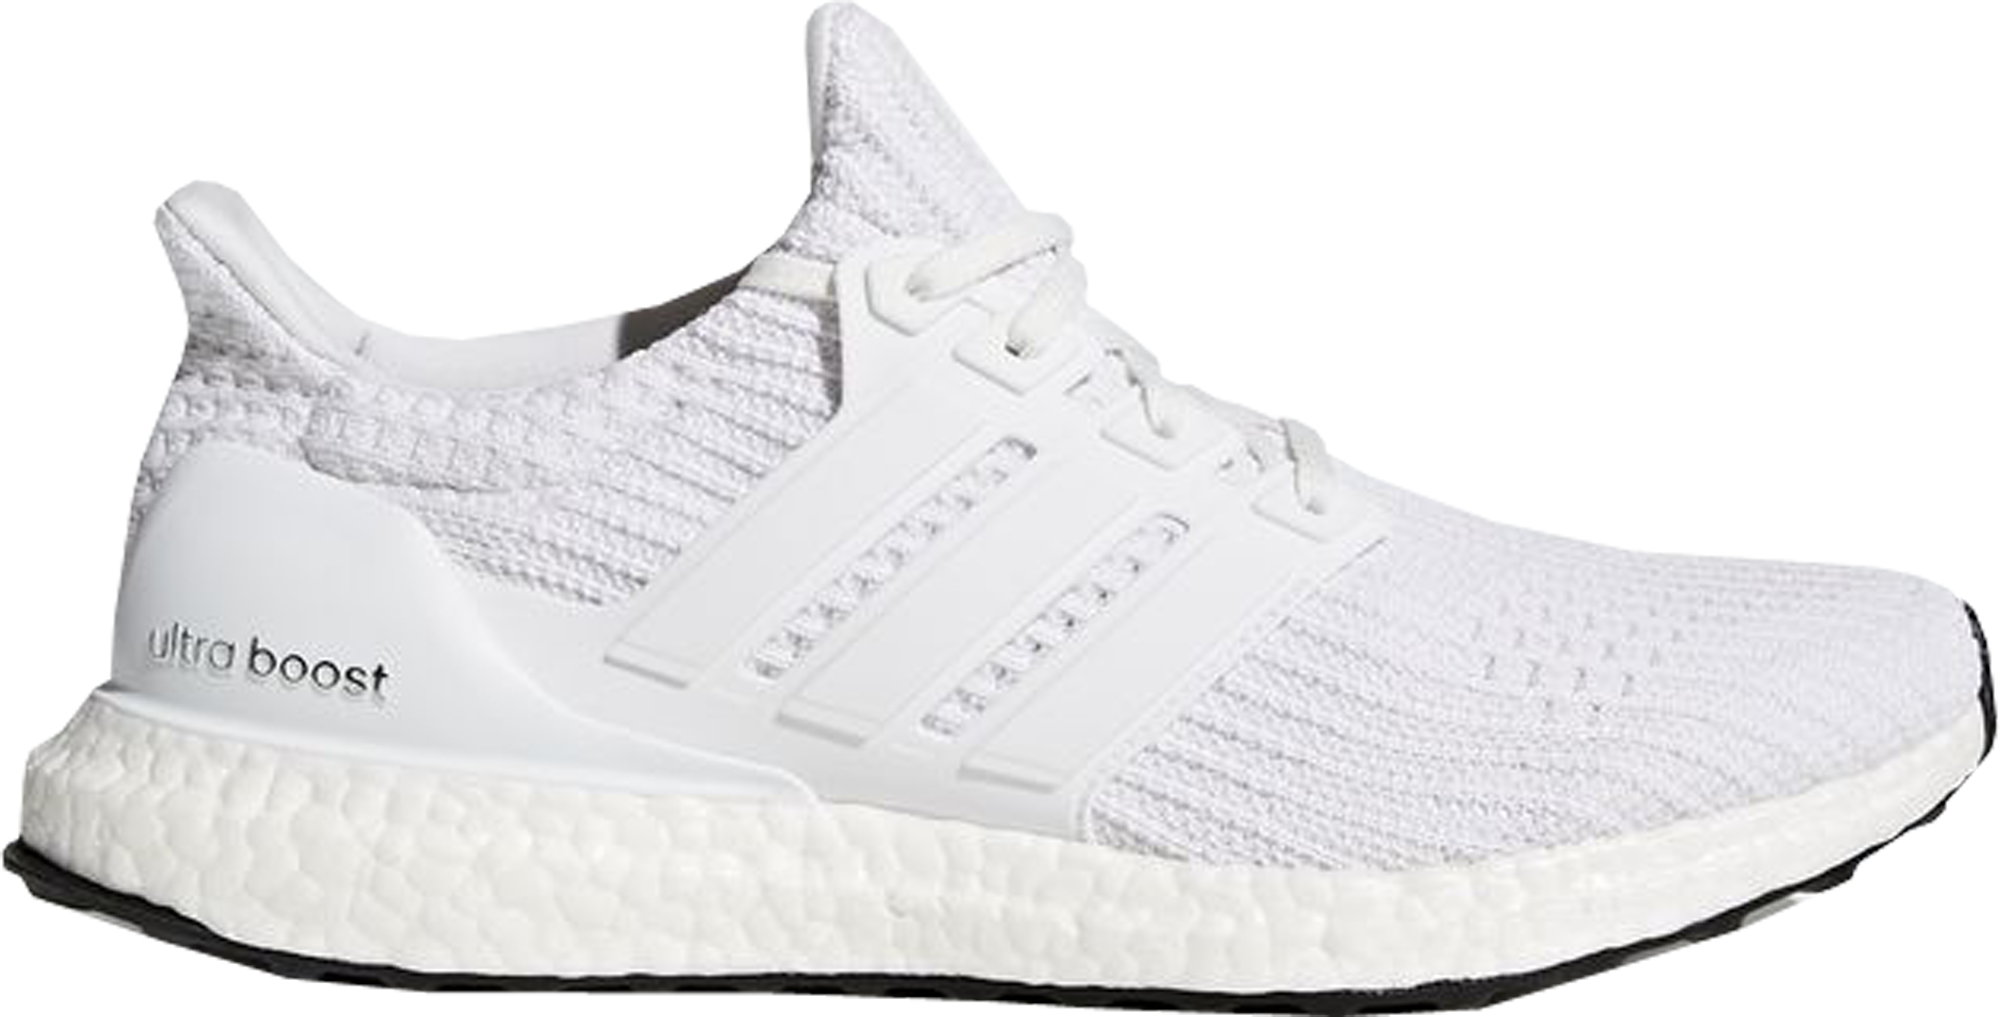 196d1630c8828 ... coupon code for adidas ultra boost 4.0 running white 36ec1 7285b